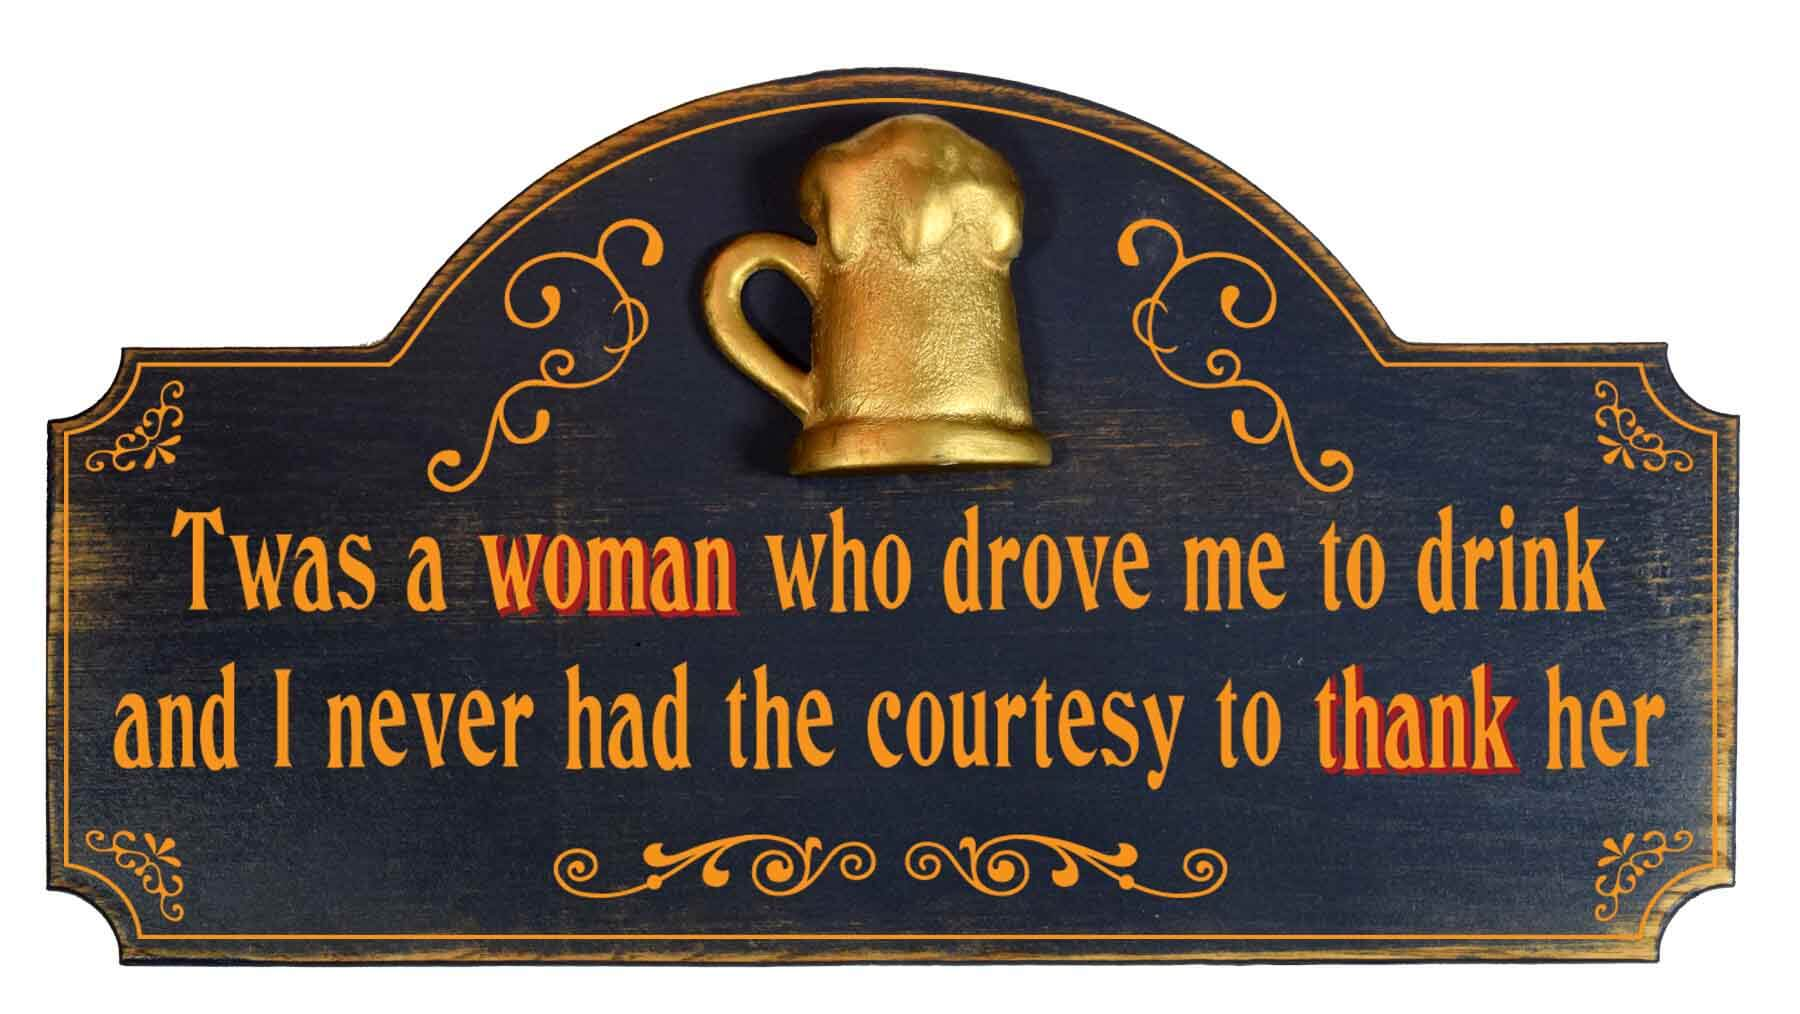 Twas a woman who drove me to drink